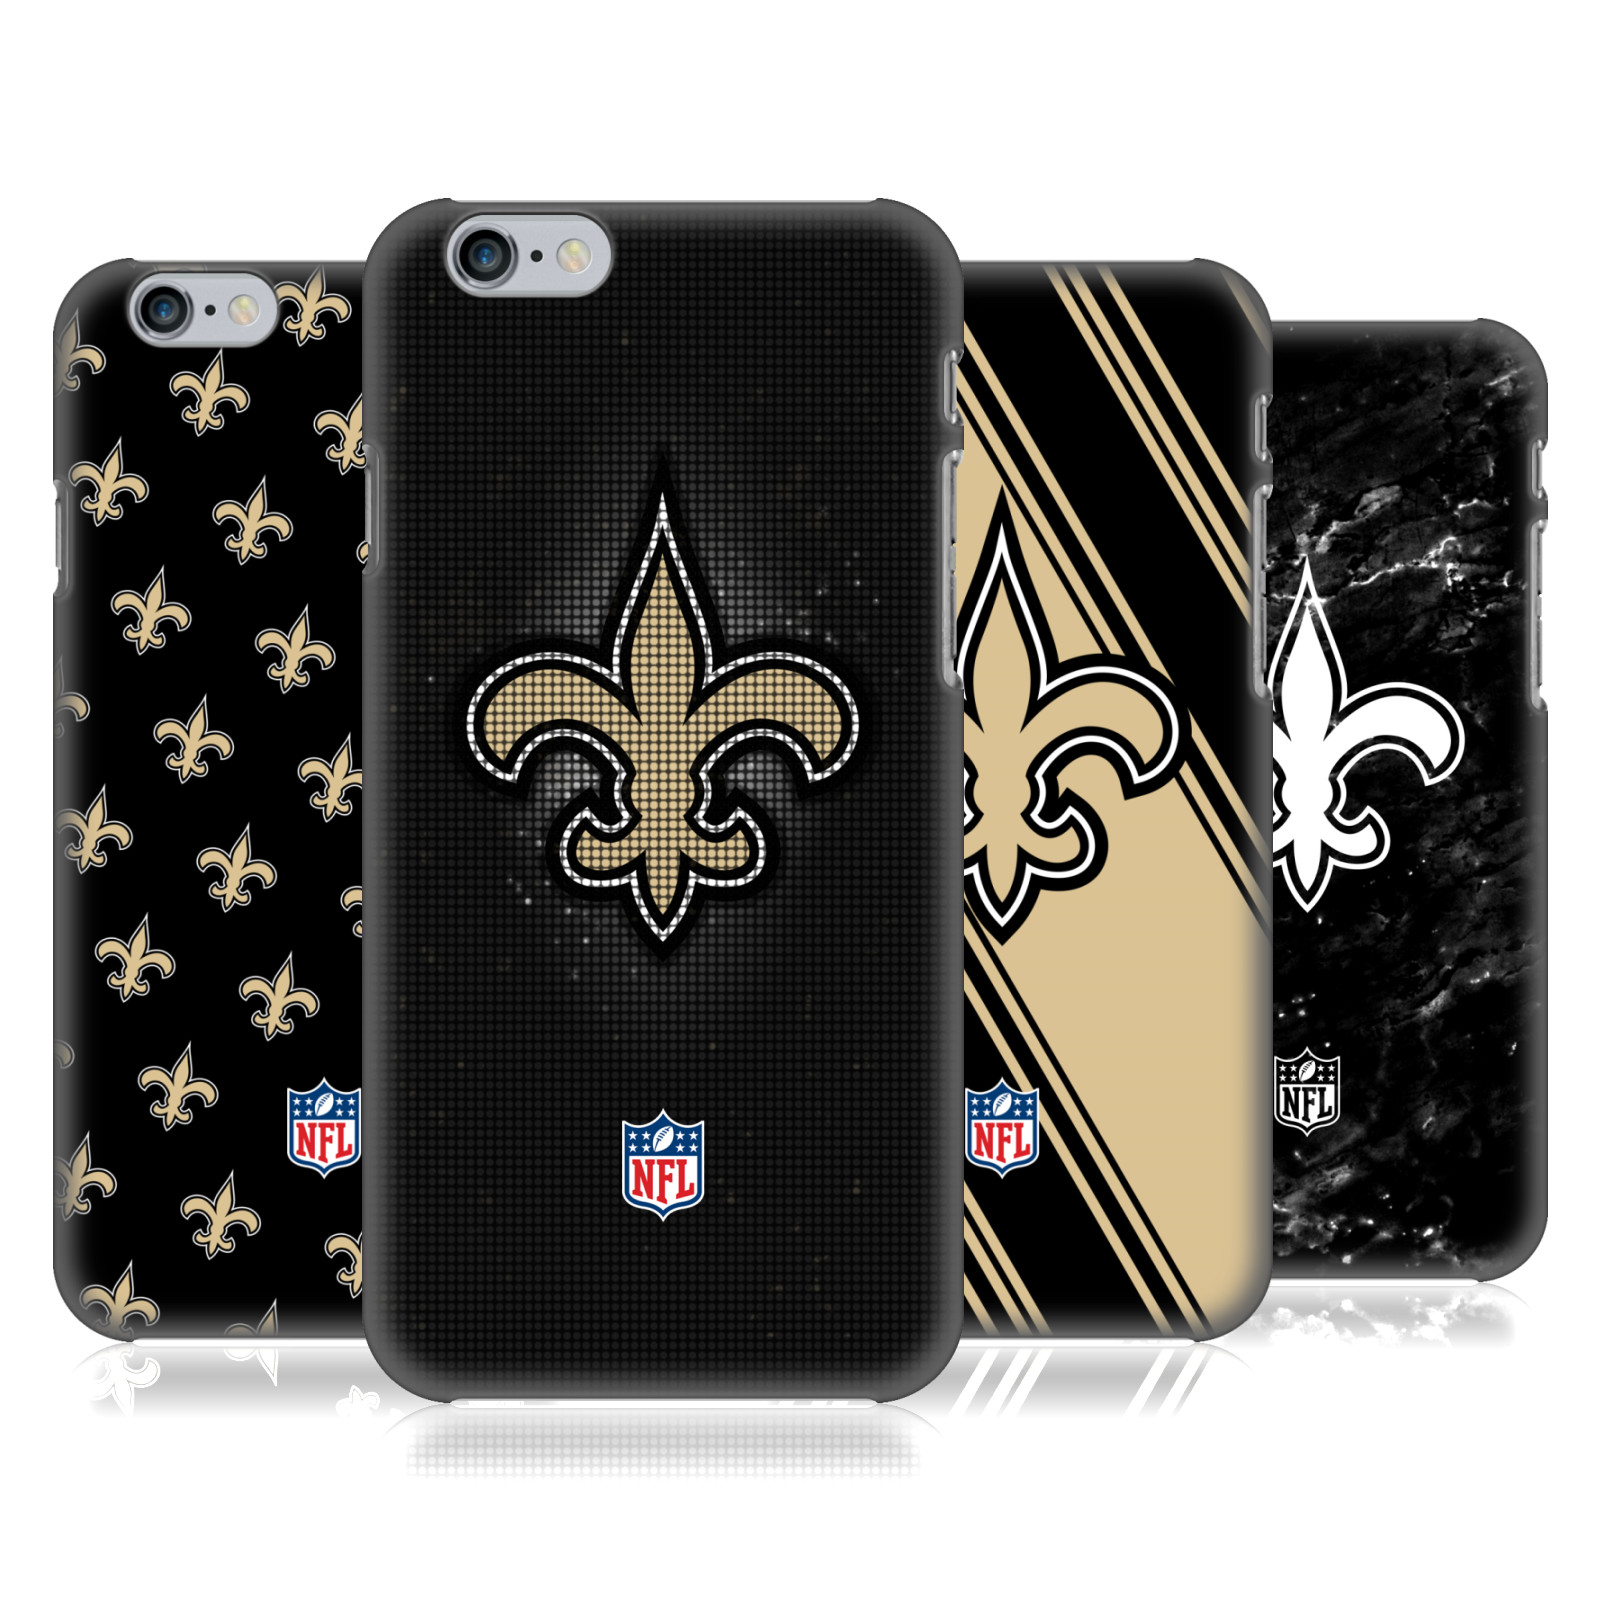 NFL 2017/18 New Orleans Saints